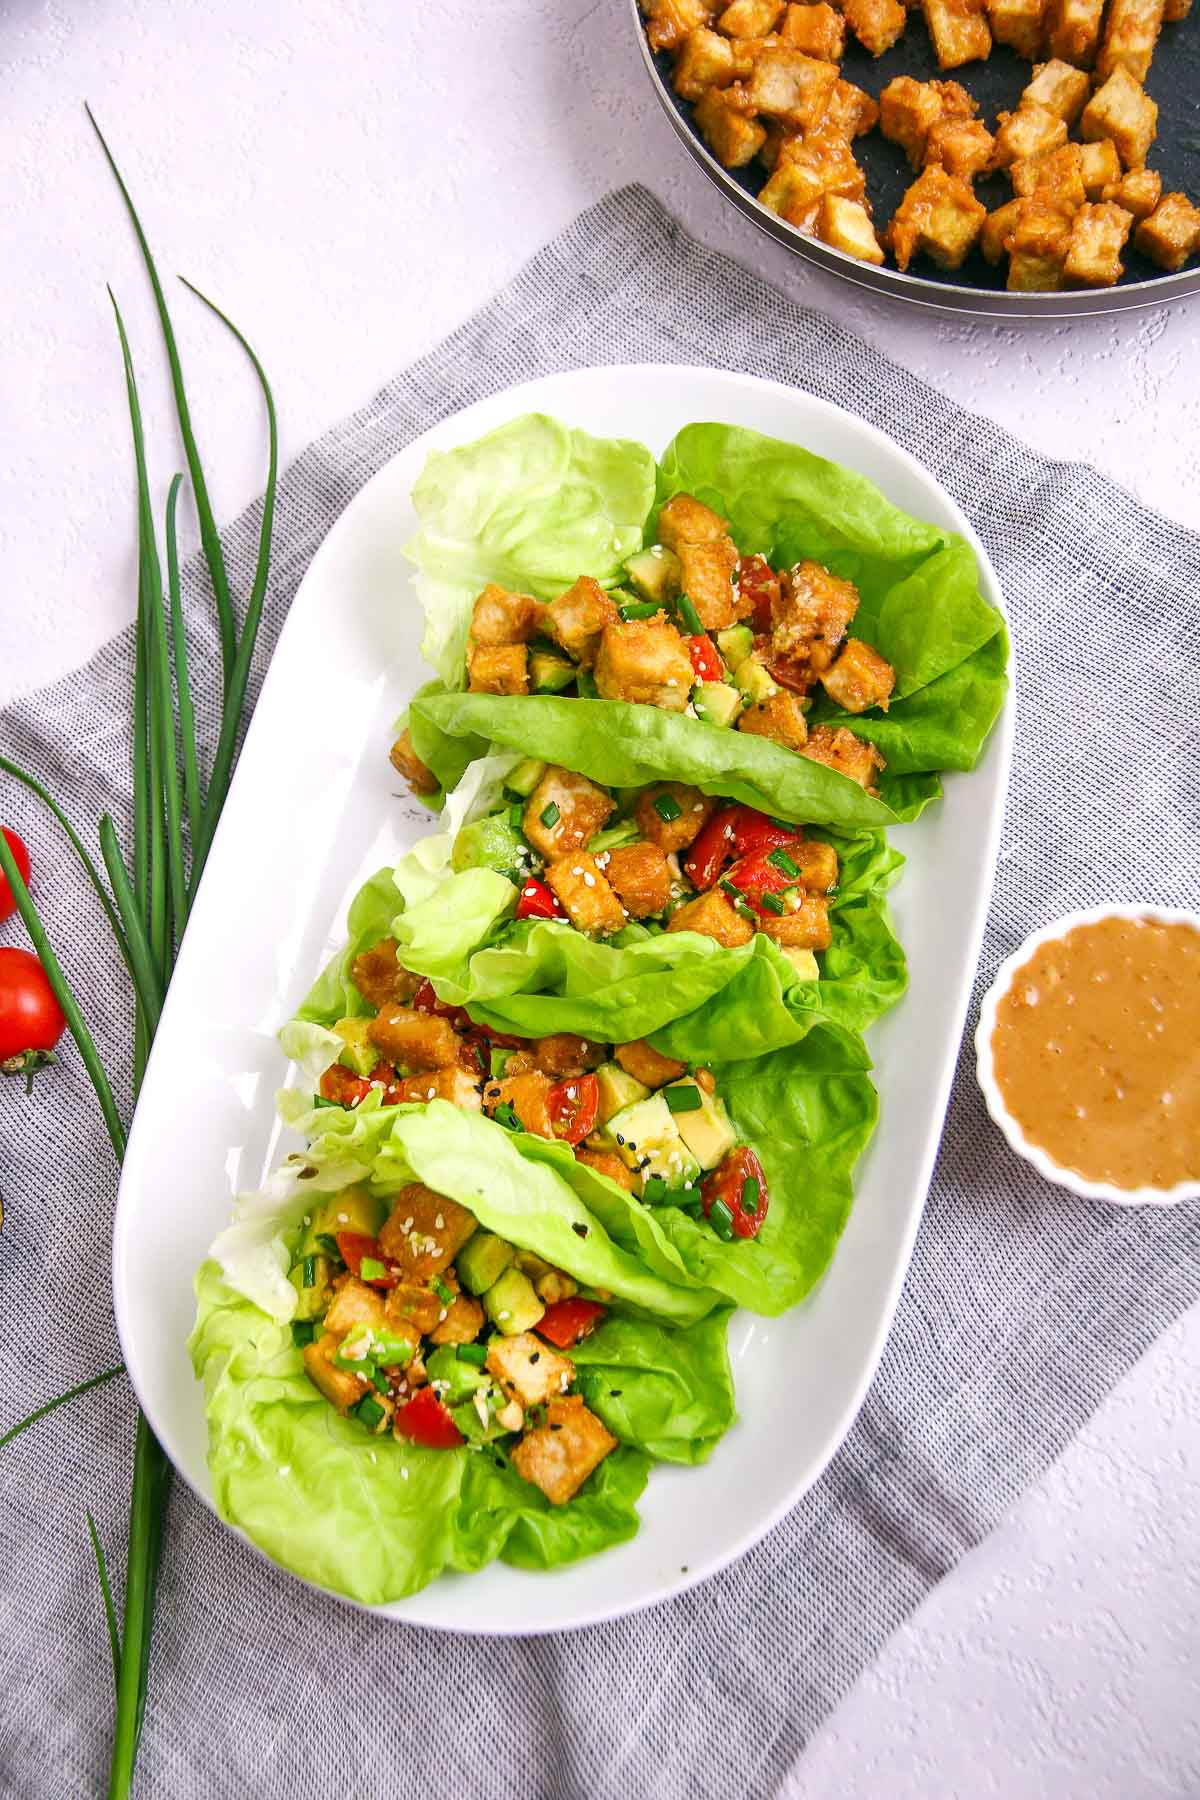 Healthy low carb and vegan tofu lettuce wraps appetizer recipe with peanut sauce.